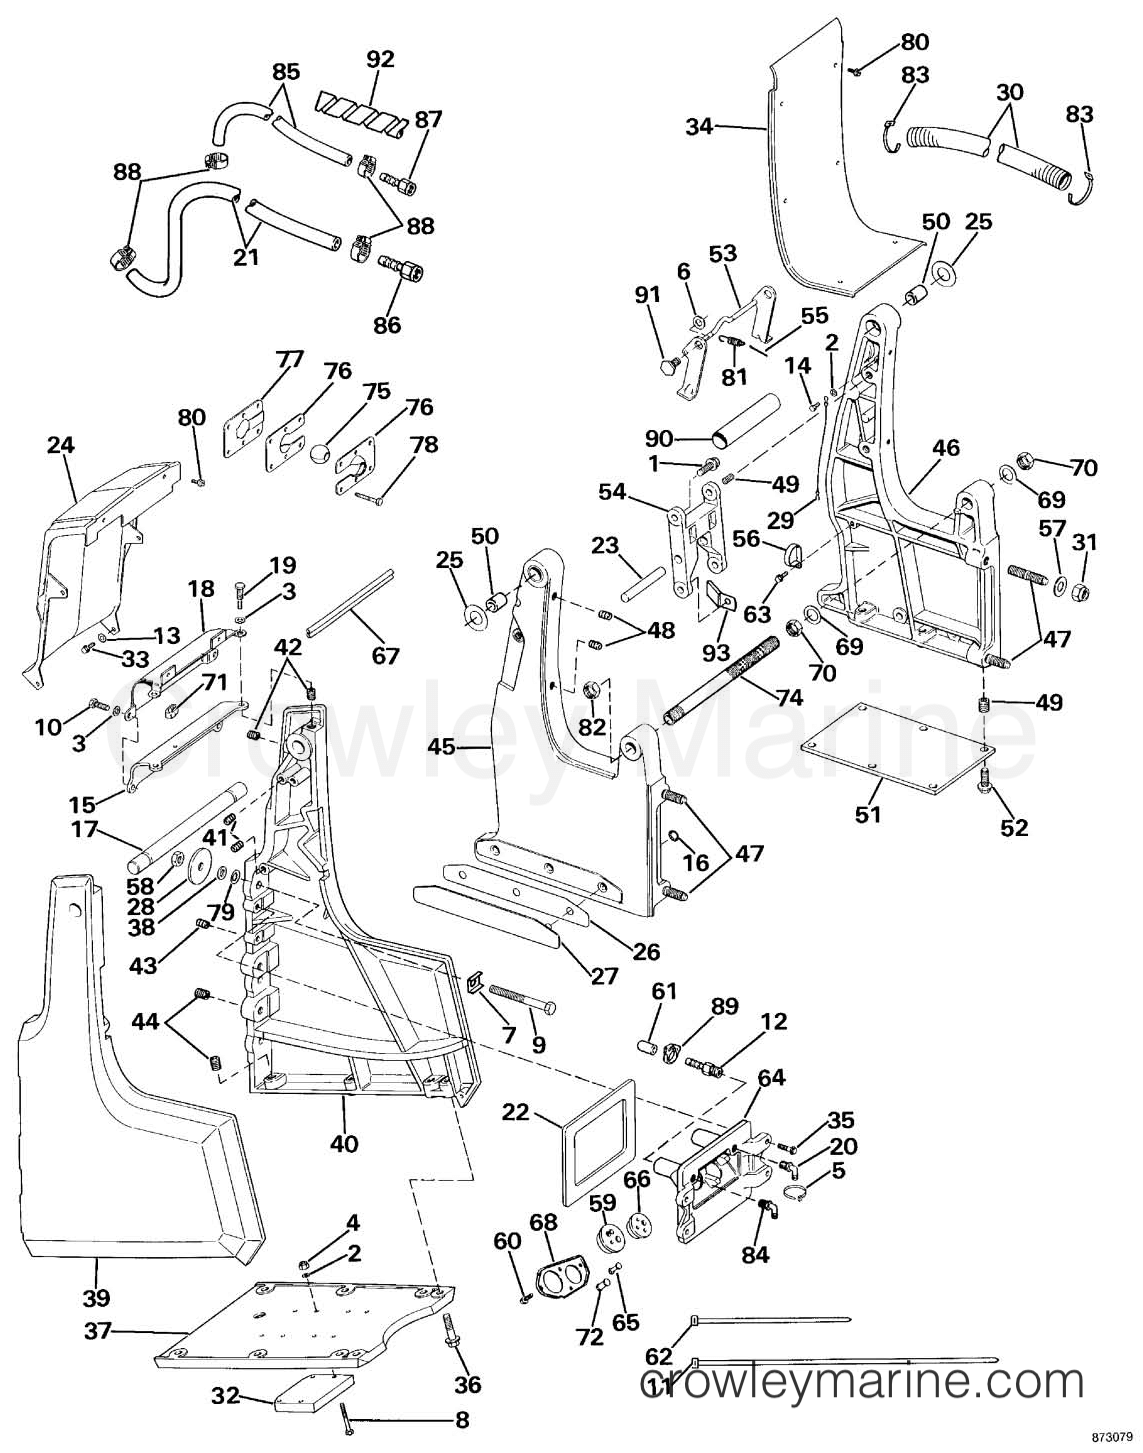 Omc Steering Diagram Free Download Sea Drive Wiring Transom Bracket Assembly Mechanical 1990 System At